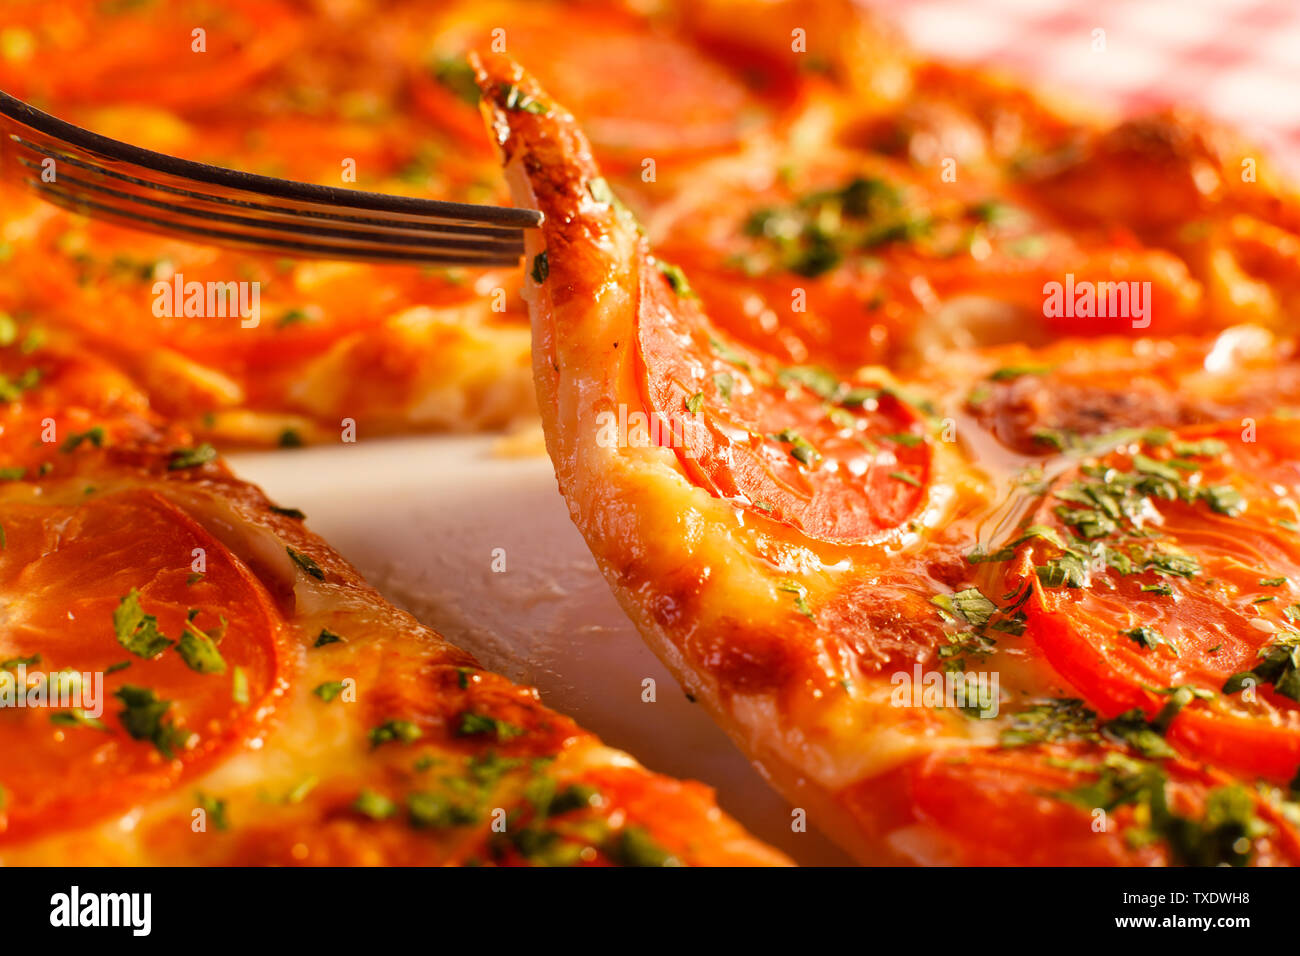 Close up eating piece of pizza with a fork, Pizza Margarita. Delicious hot food sliced and served on white platter. Menu photo, Italian fast food. - Stock Image